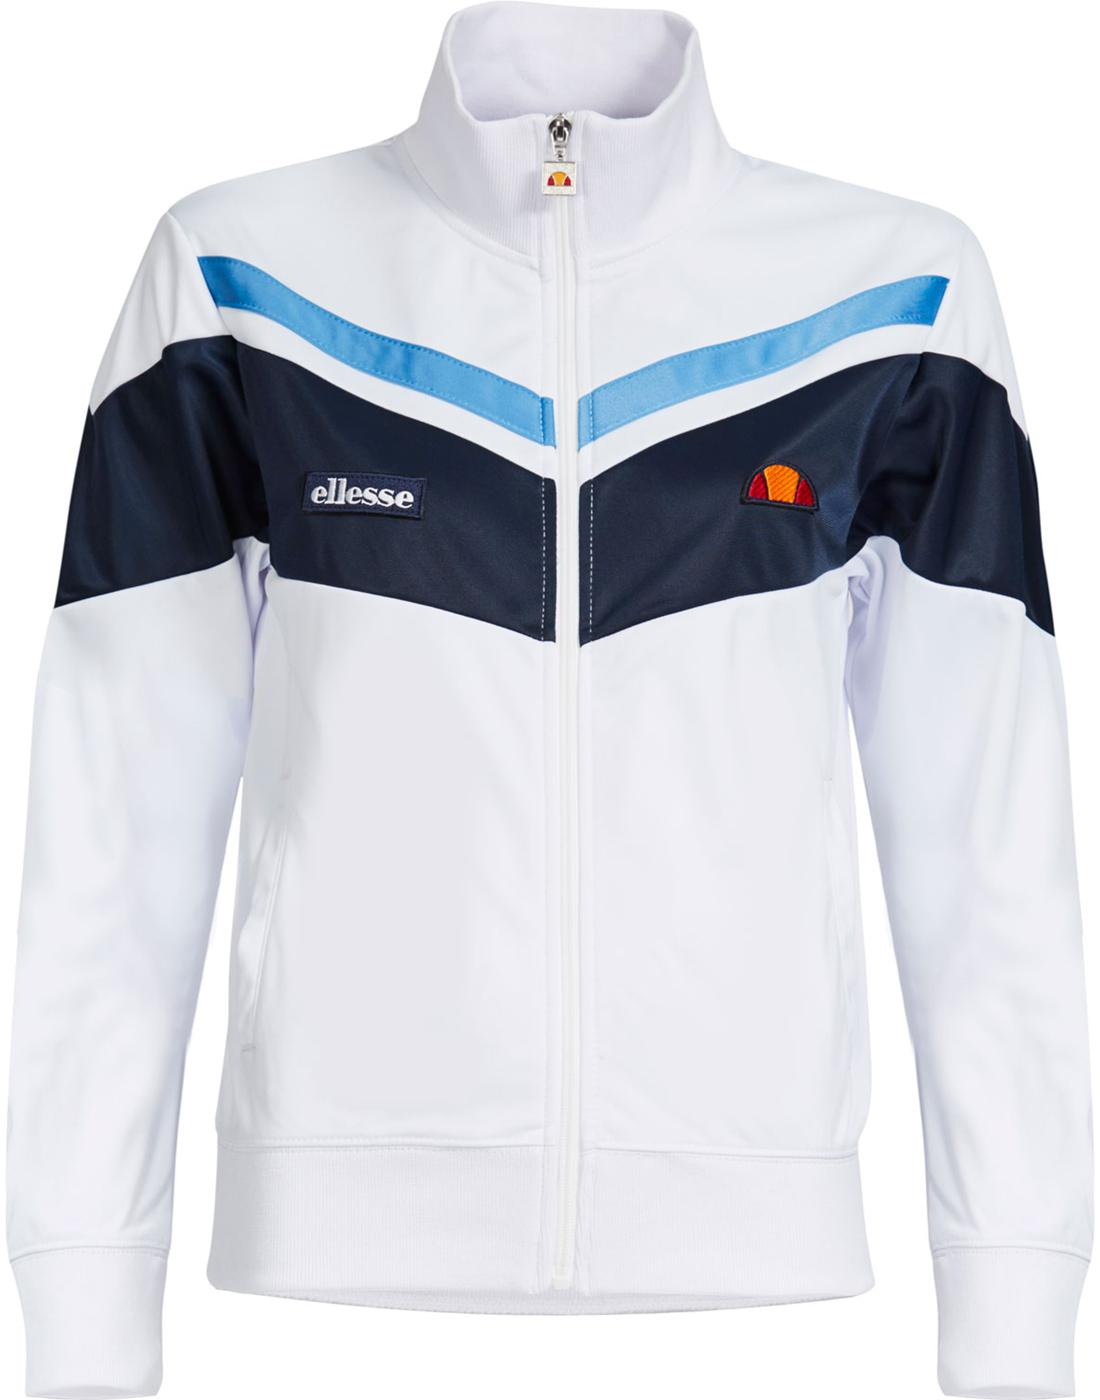 53f7748b2e06 ELLESSE Women s Daria Retro 70s Track Top Jacket in White